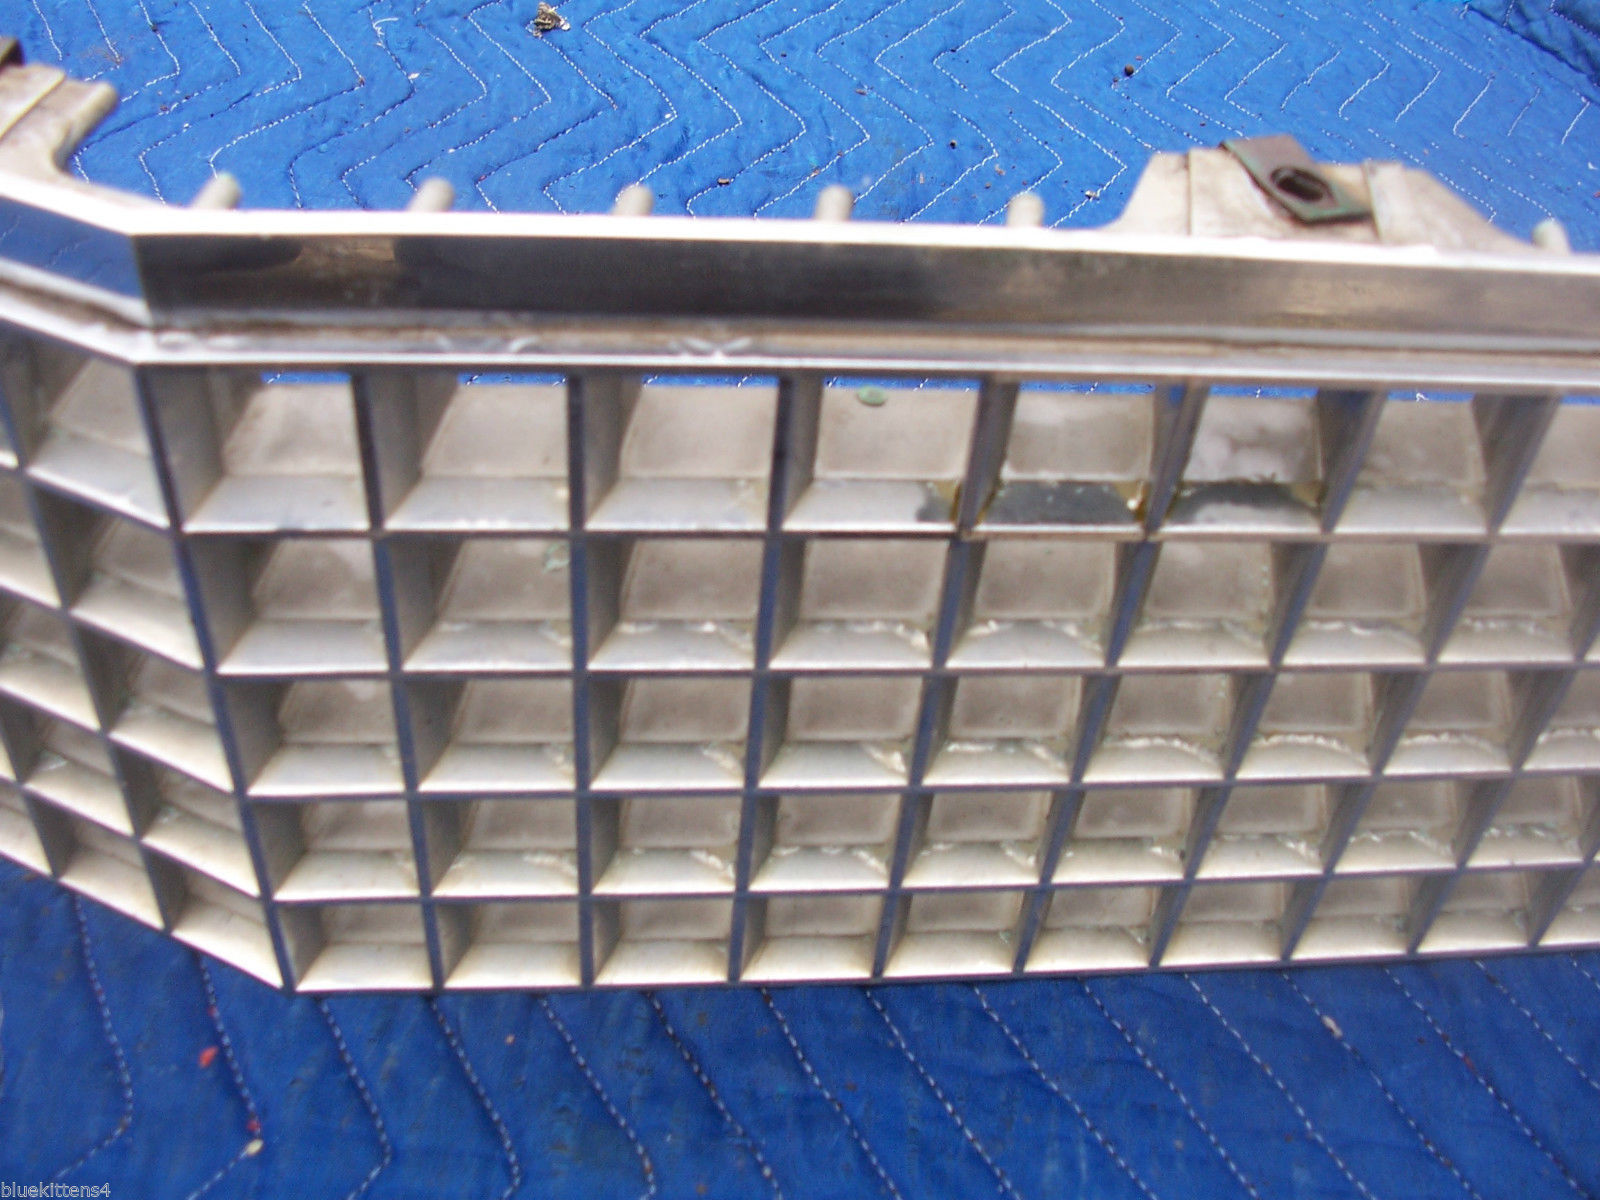 1979 DEVILLE GRILL OEM USED ORIGINAL CADILLAC GM PART 1614185 GRILLE FRONT 1978 image 4